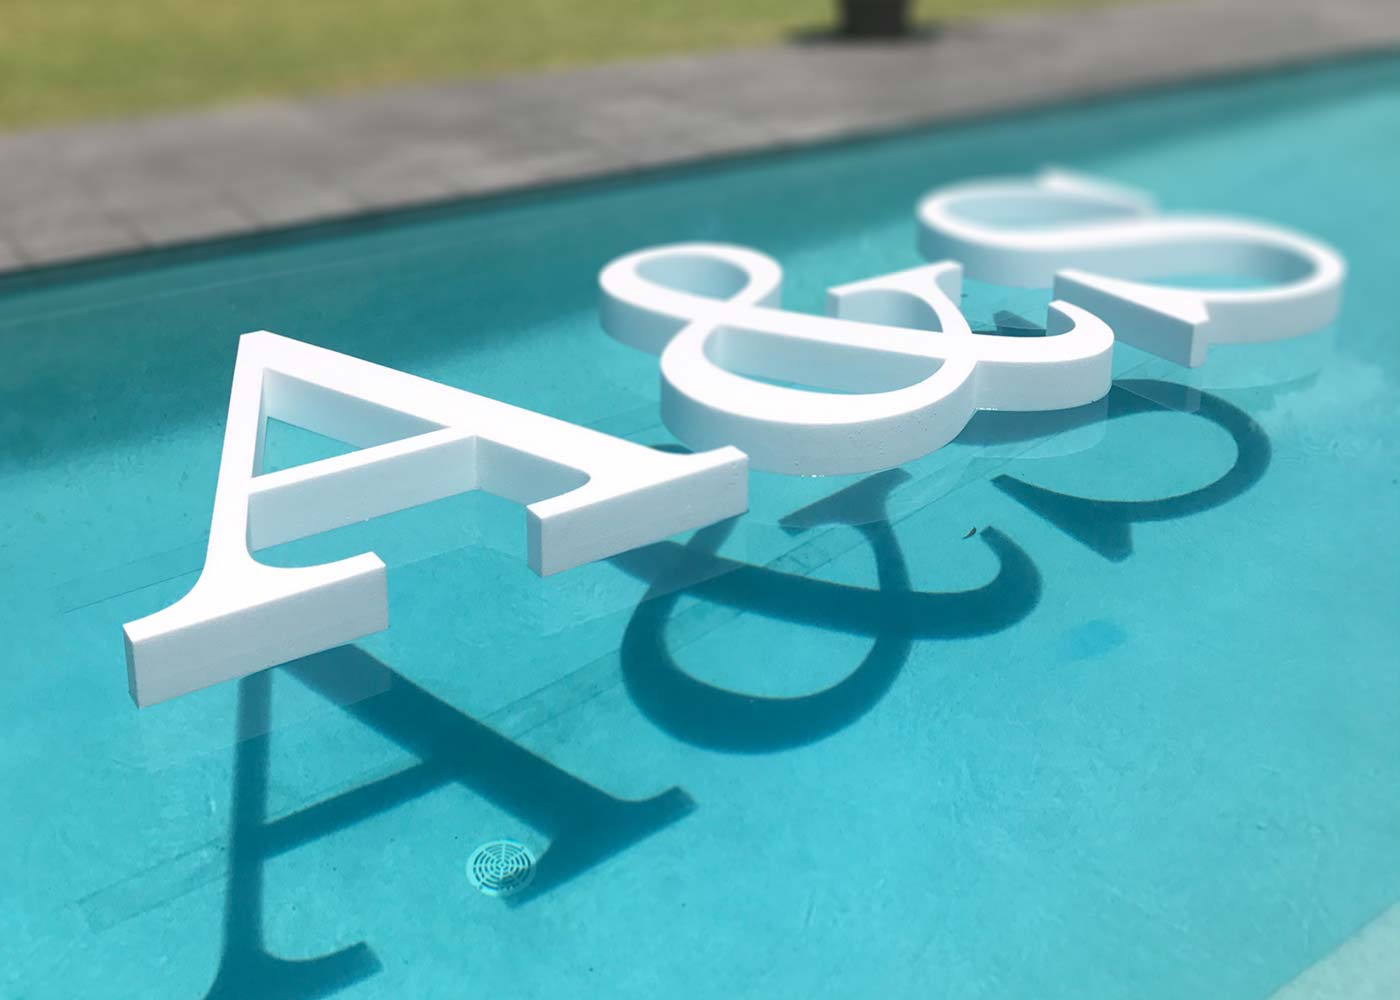 Floating Pool Letters 'A&S'